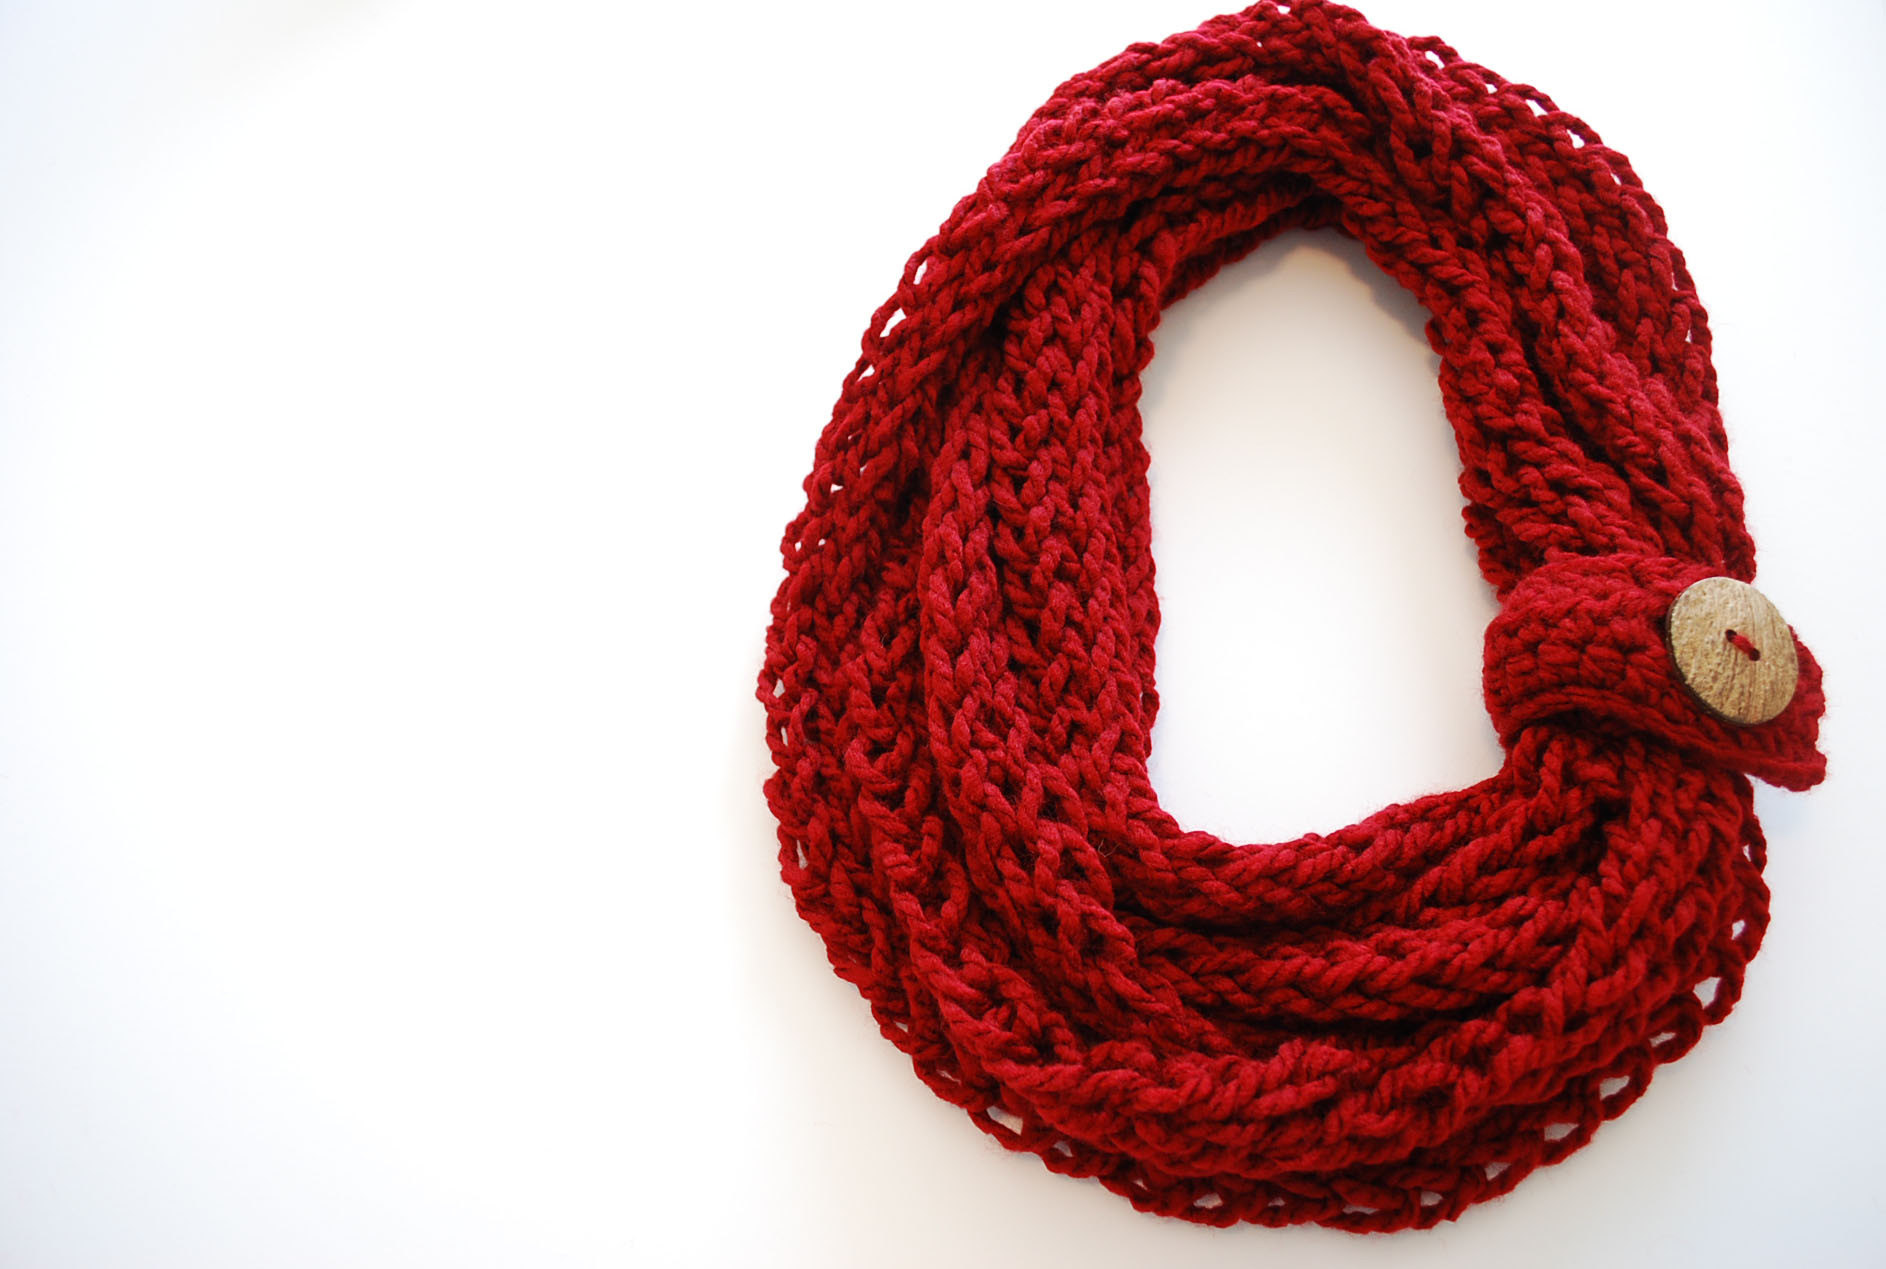 Infinity Scarf Pattern Elegant Finger Knit Infinity Scarf B Hooked Crochet Of Awesome 42 Ideas Infinity Scarf Pattern